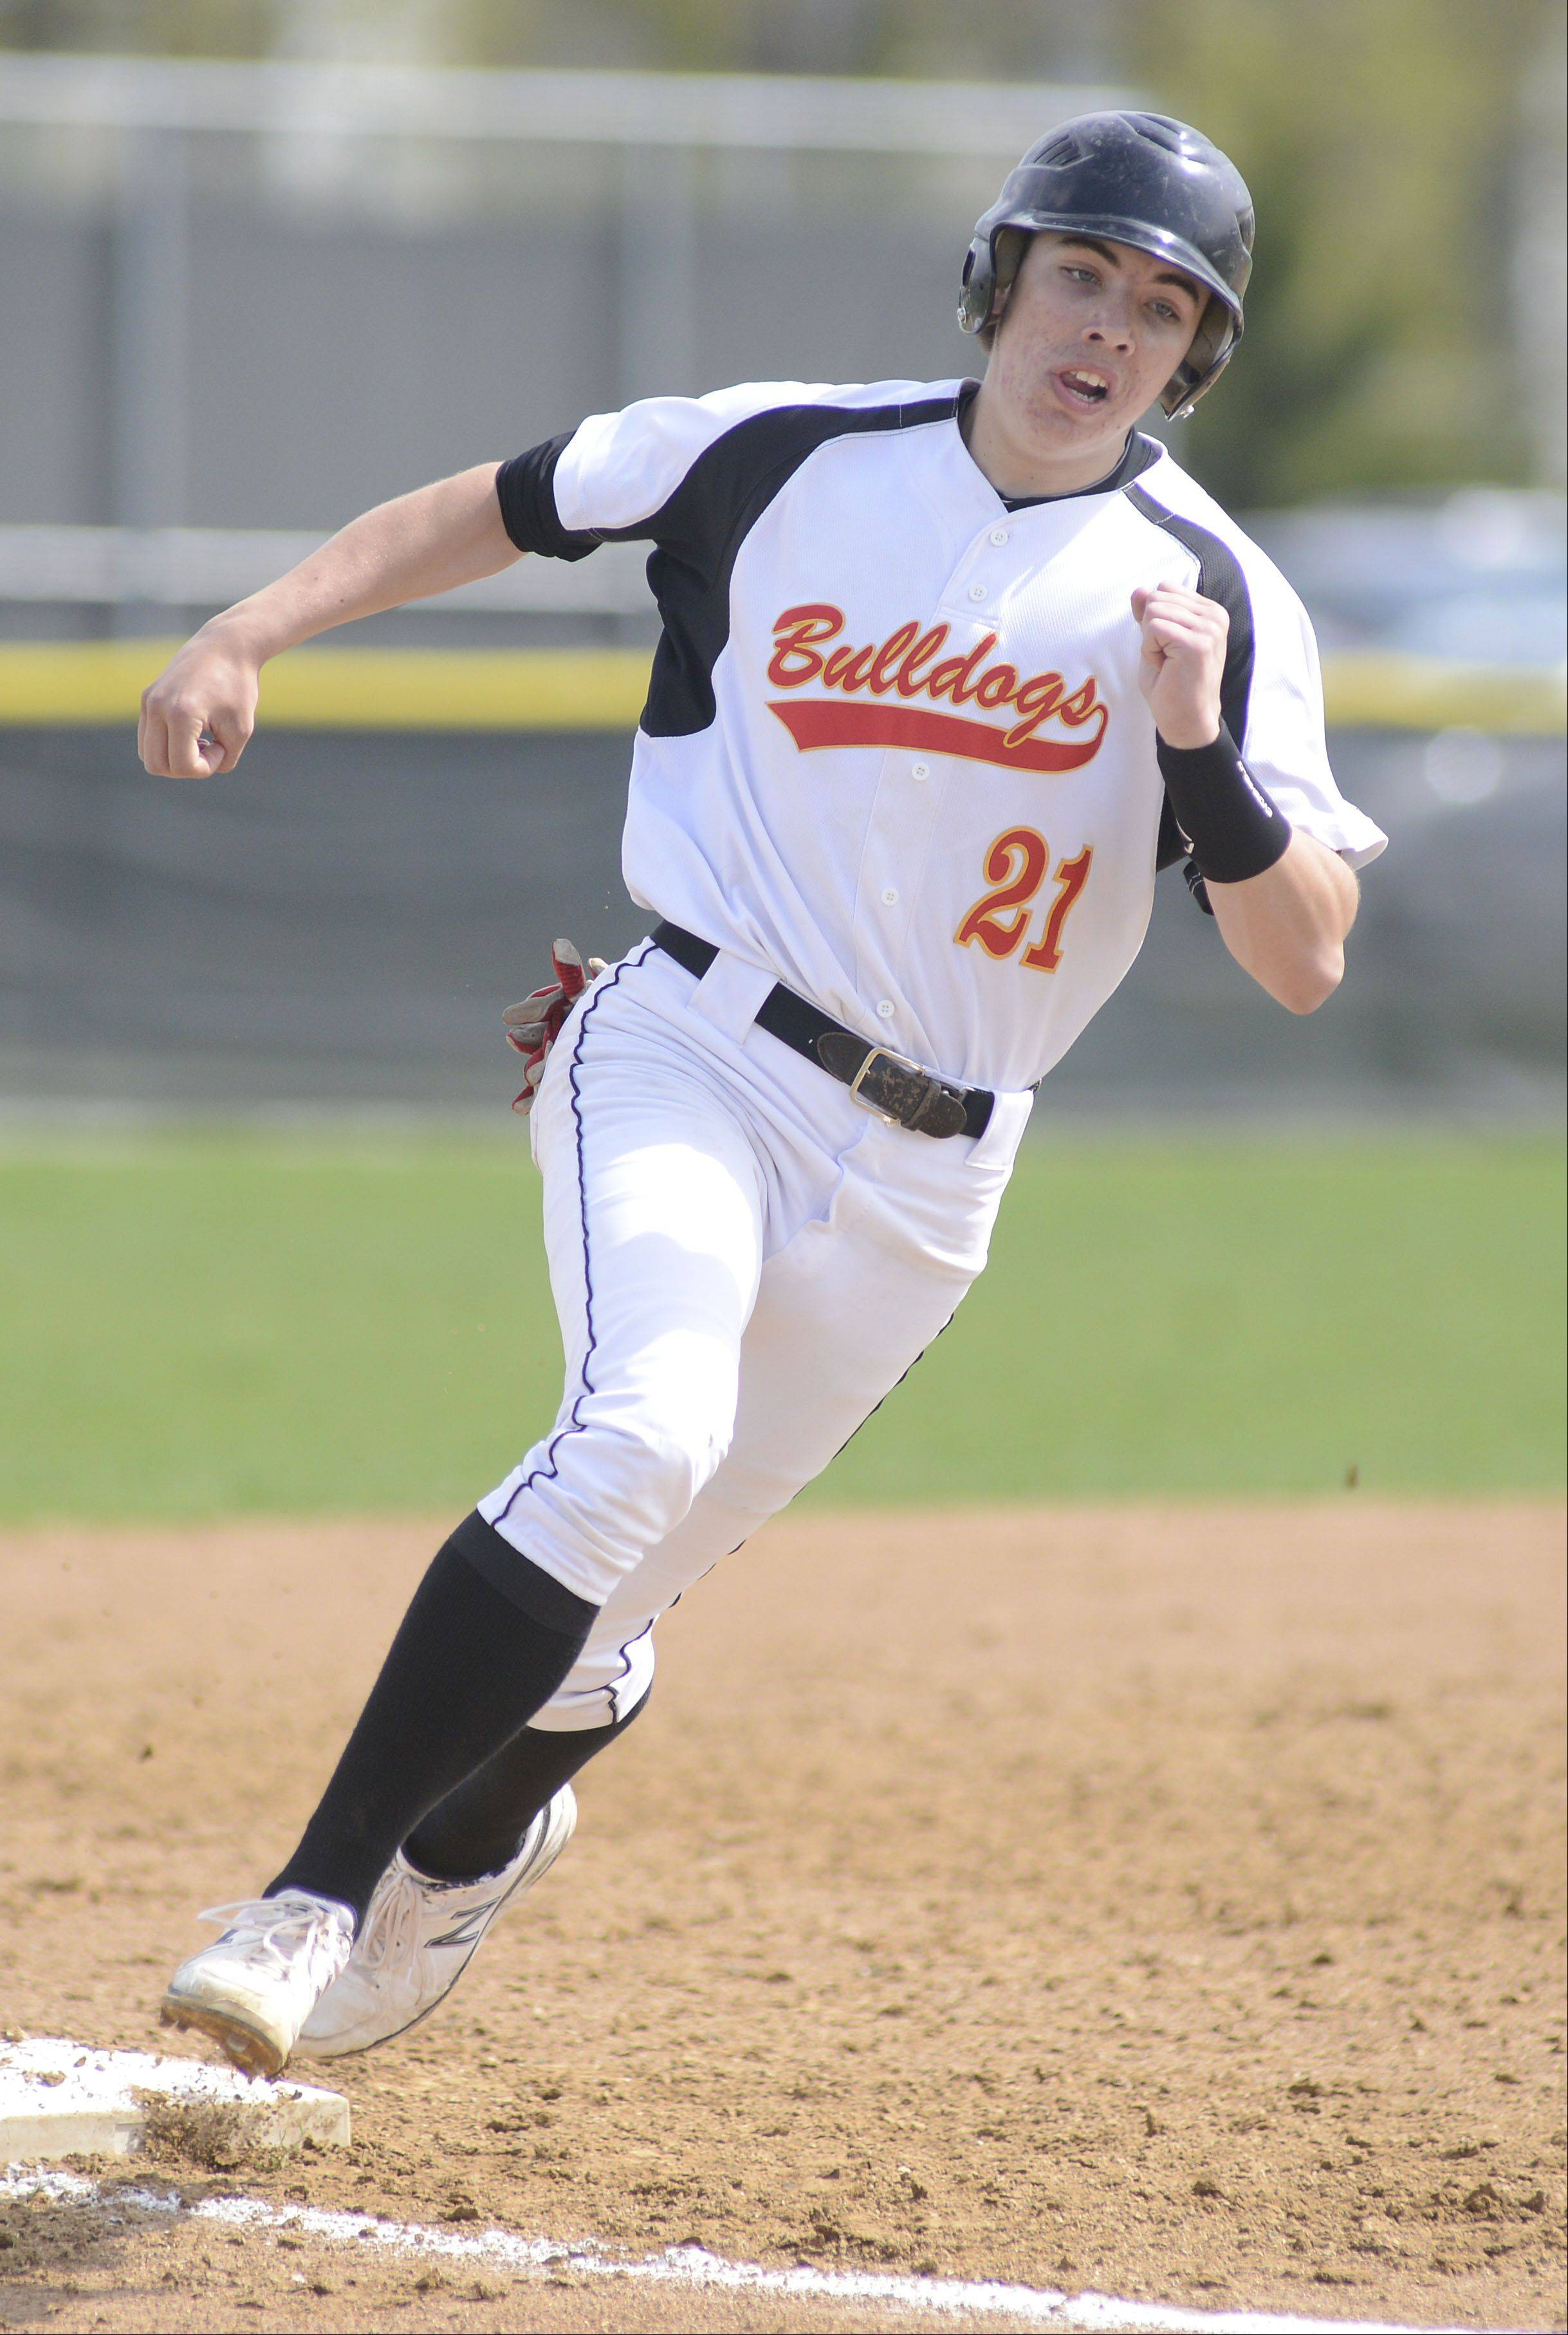 Batavia's Jeremy Schoessling rounds third base on the way to scoring a run for the Bulldogs in the fourth inning on Saturday, May 4.